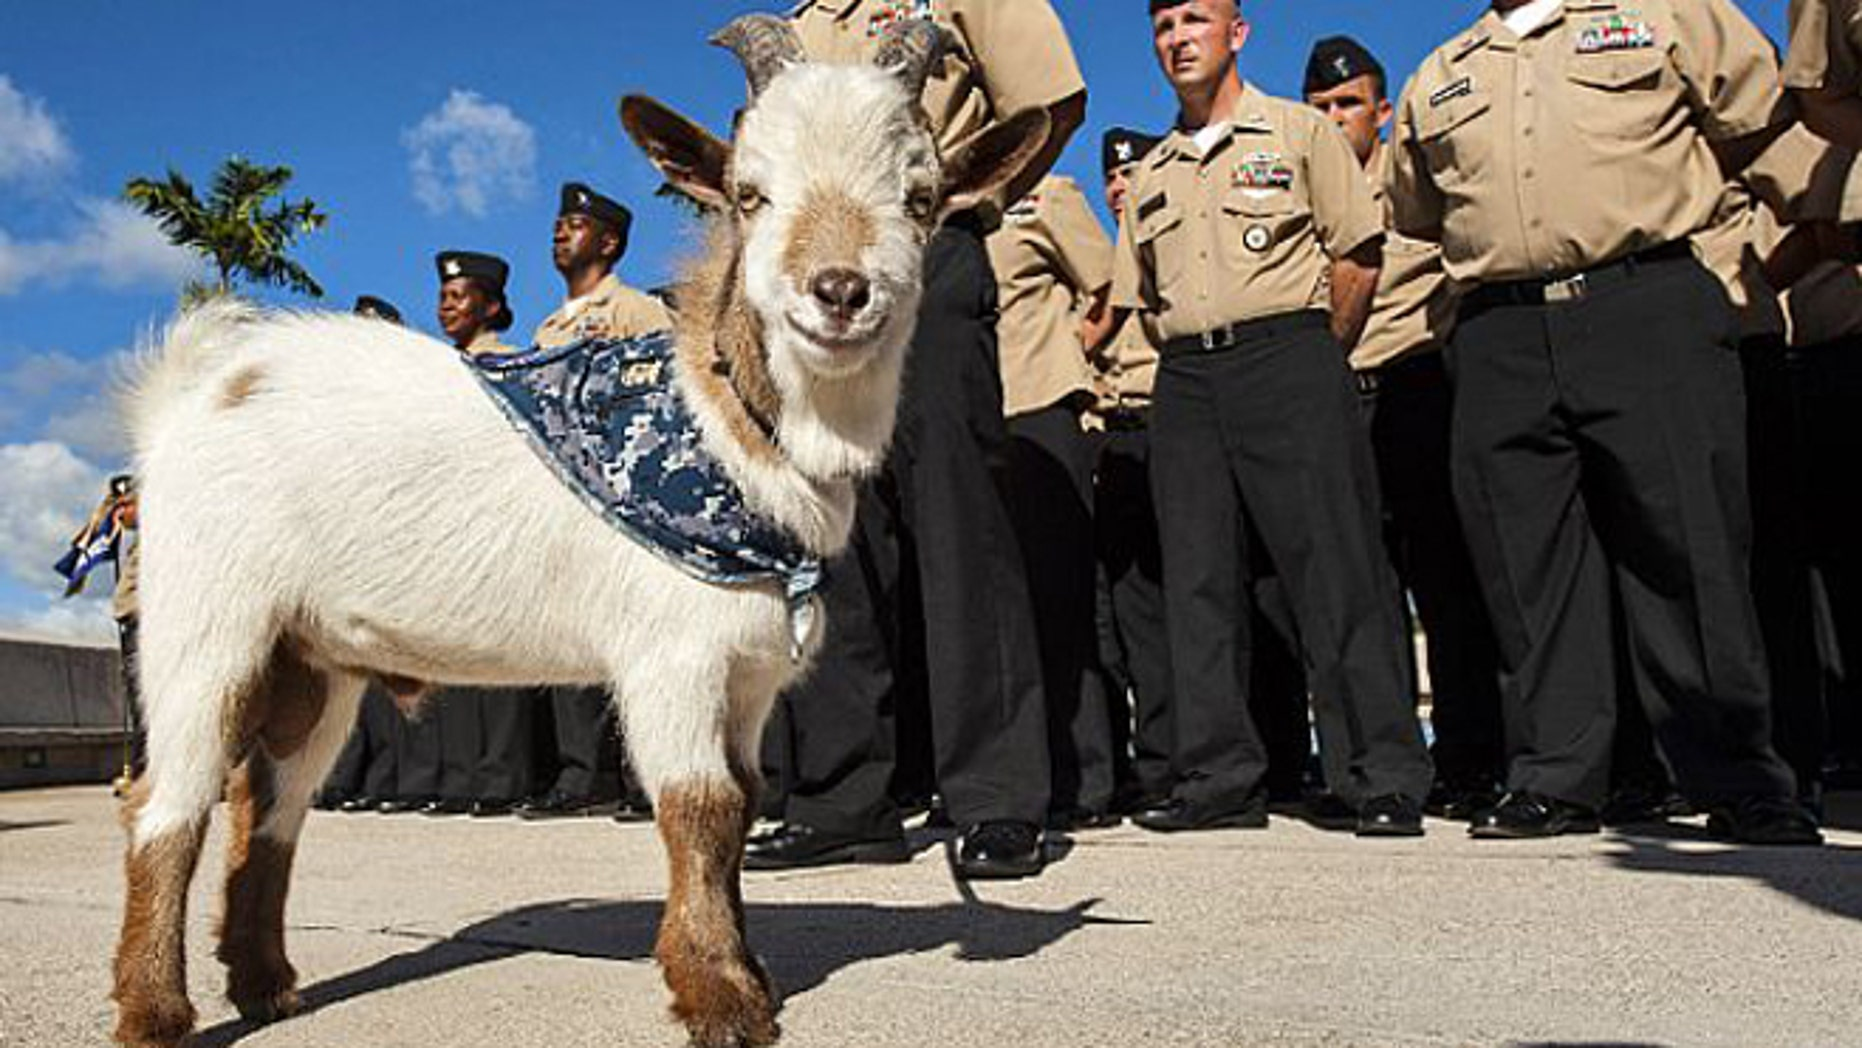 Aug. 6, 2013: Charlie the goat is shown standing by chief petty officer (CPO) selectees at Joint Base Pearl Harbor-Hickam.